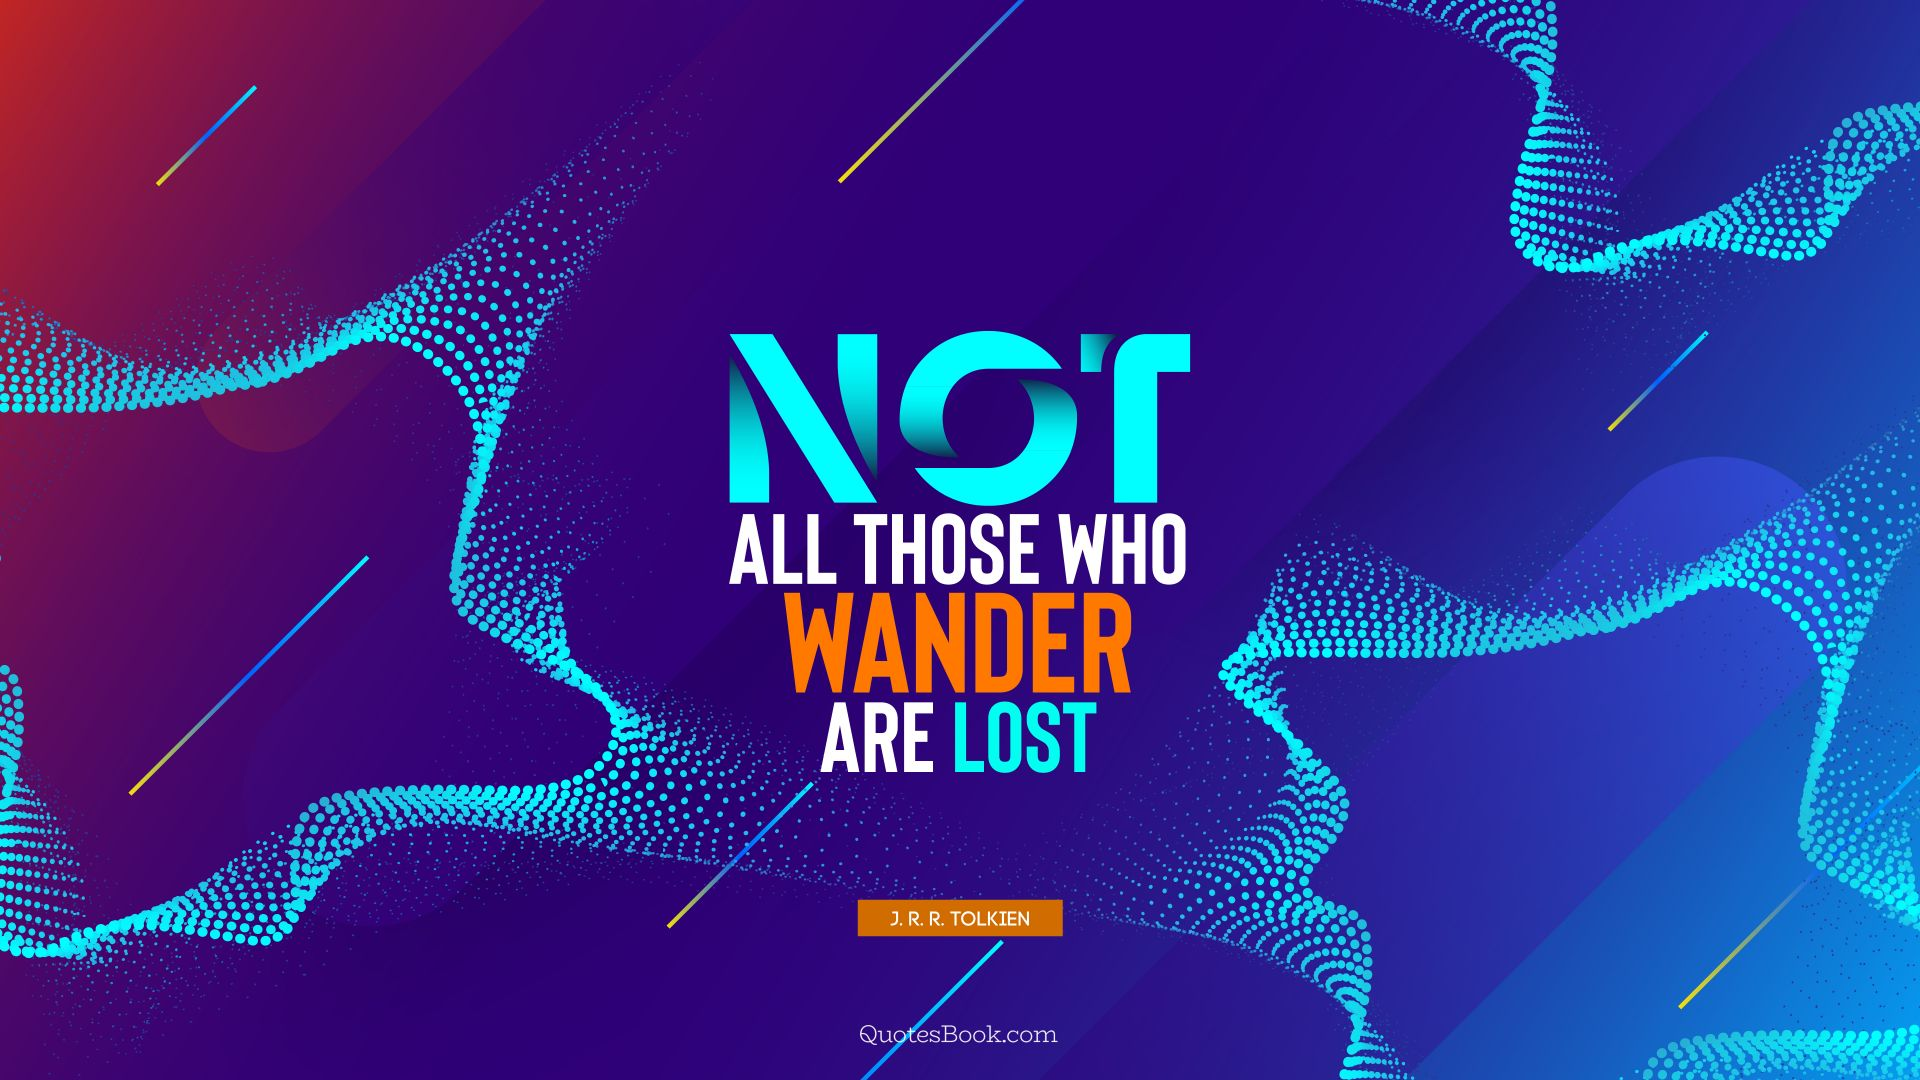 Not all those who wander are lost. - Quote by J. R. R. Tolkien